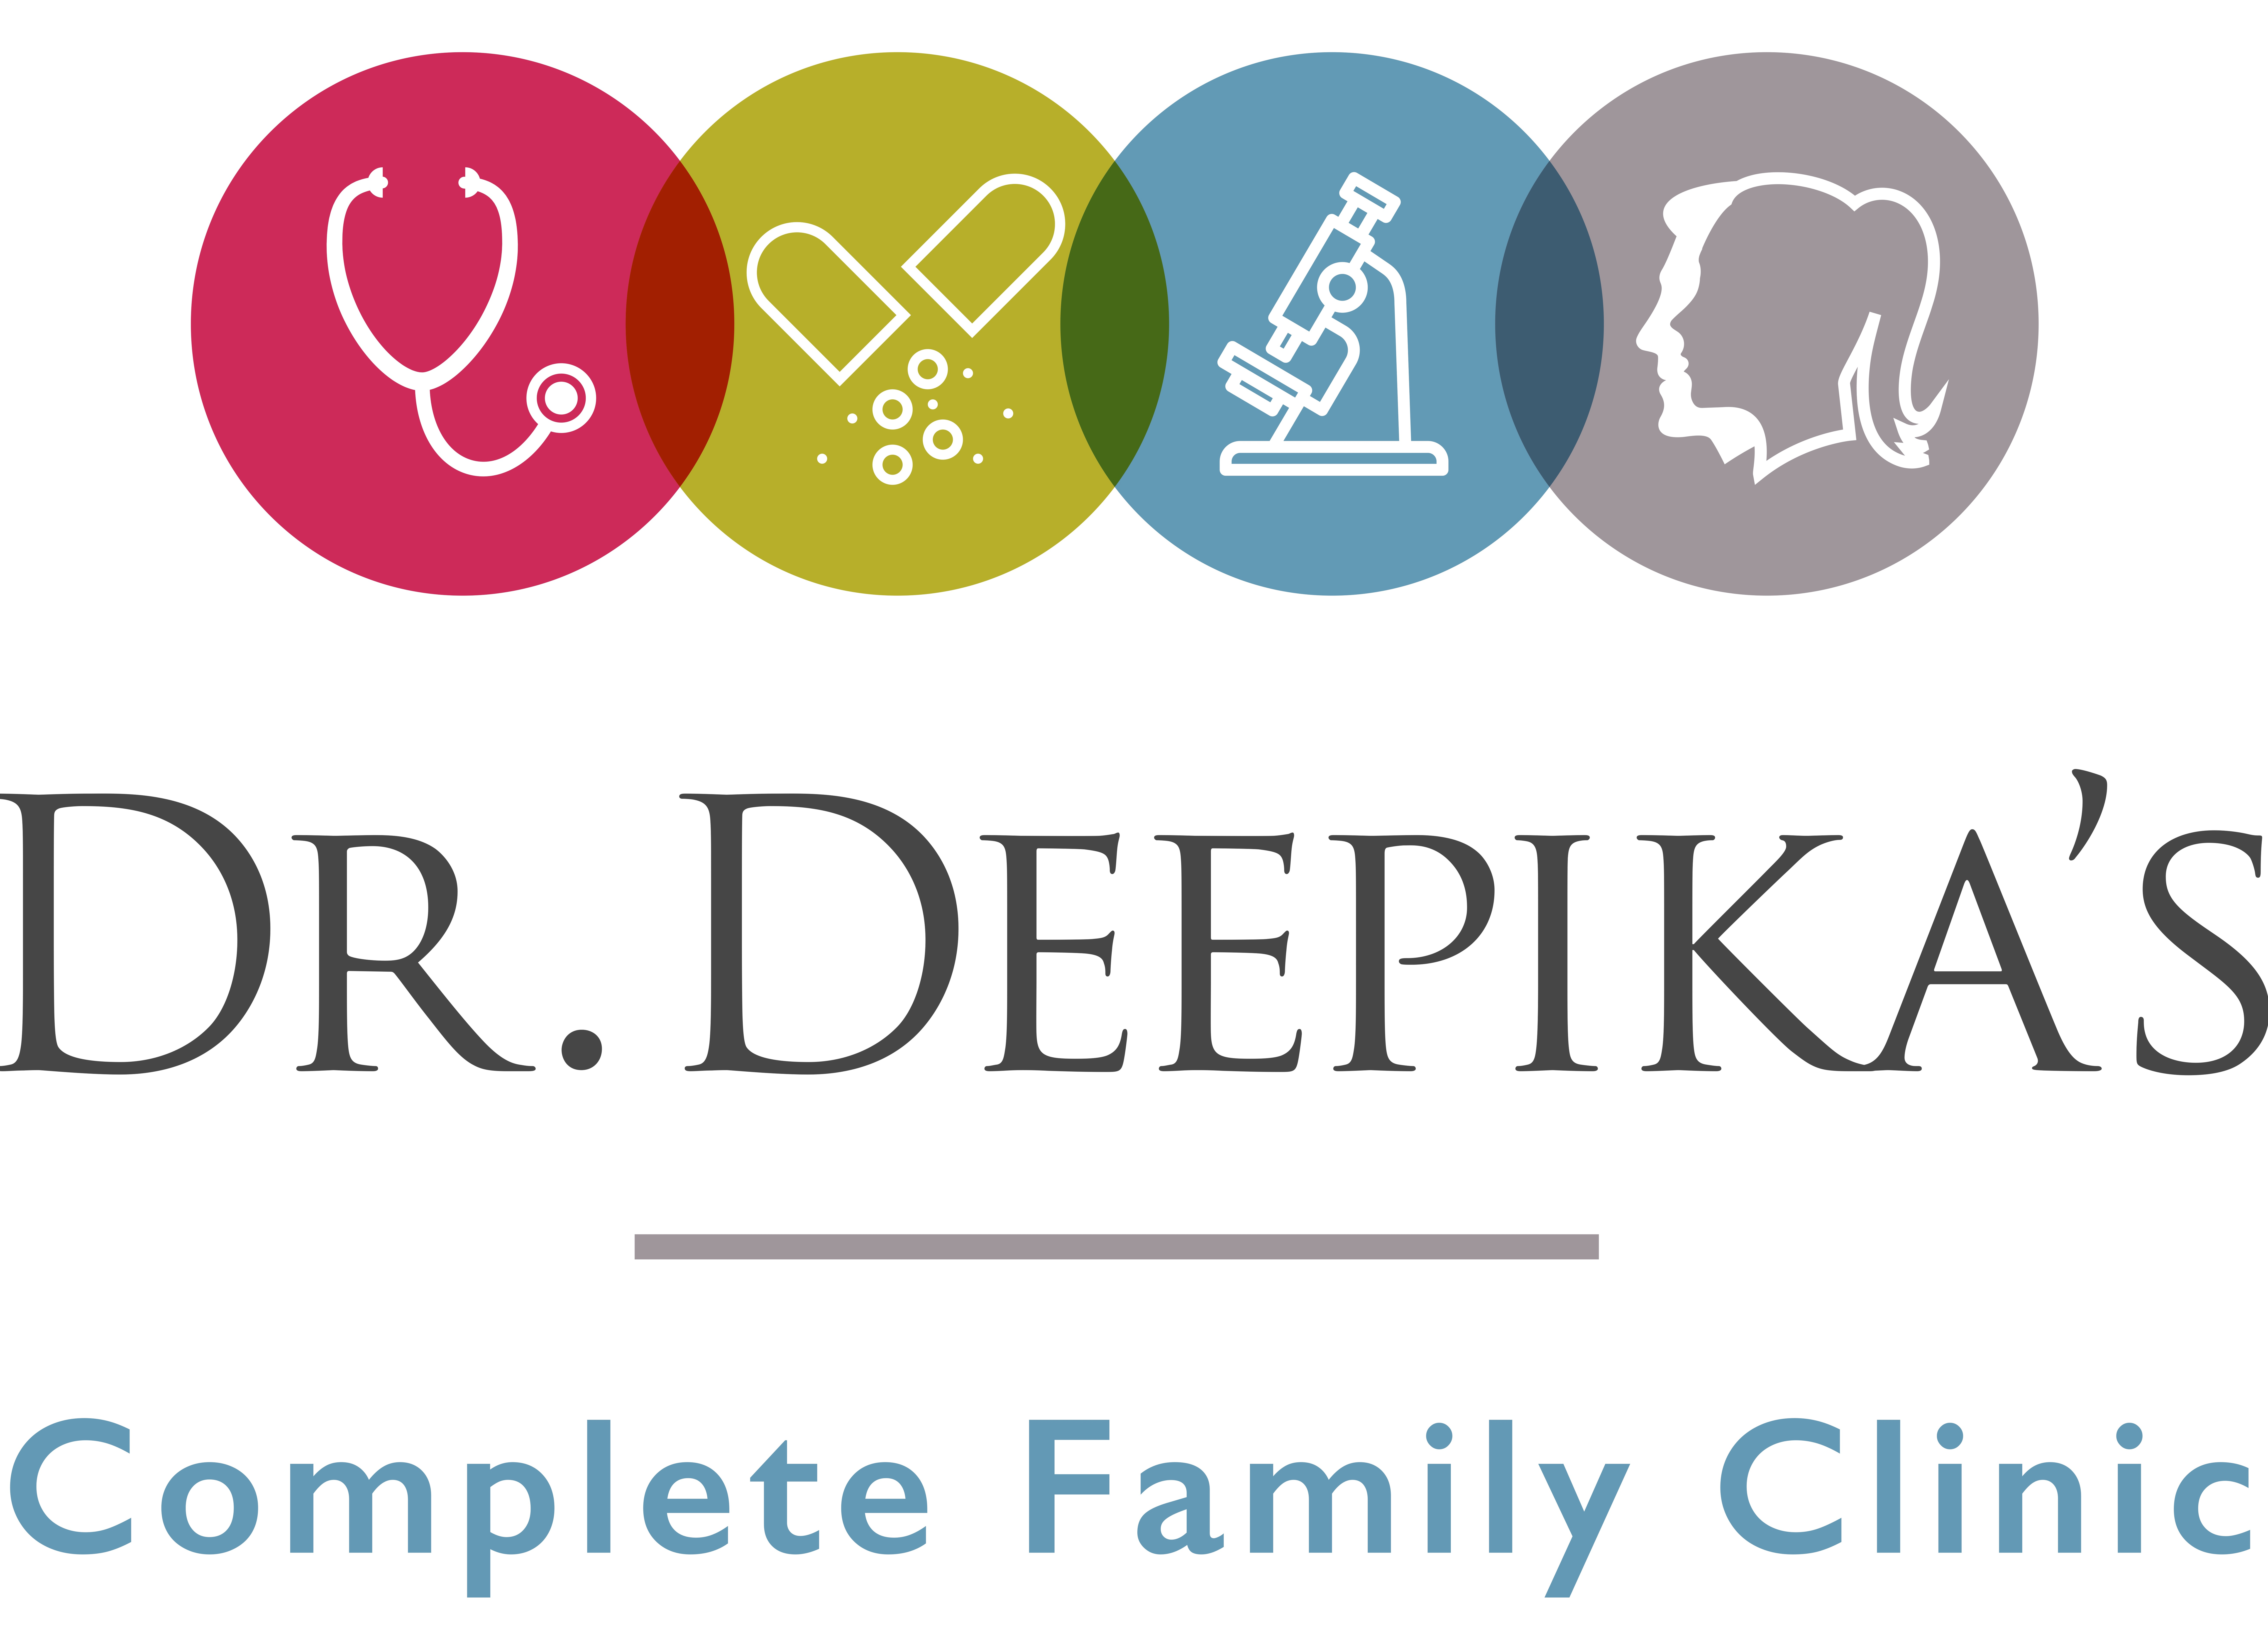 Dr. Deepika's Complete Family Clinic